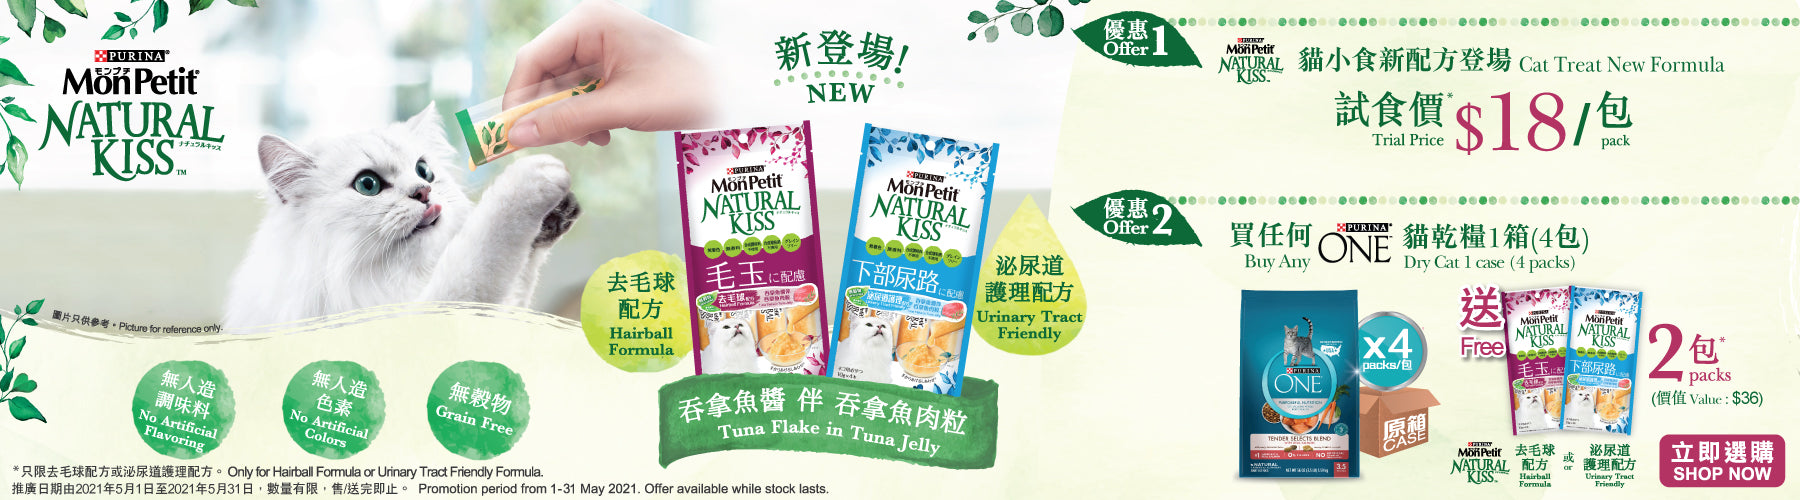 買1箱ONE貓乾糧,獲贈 Monpetit Natural Kiss 2包